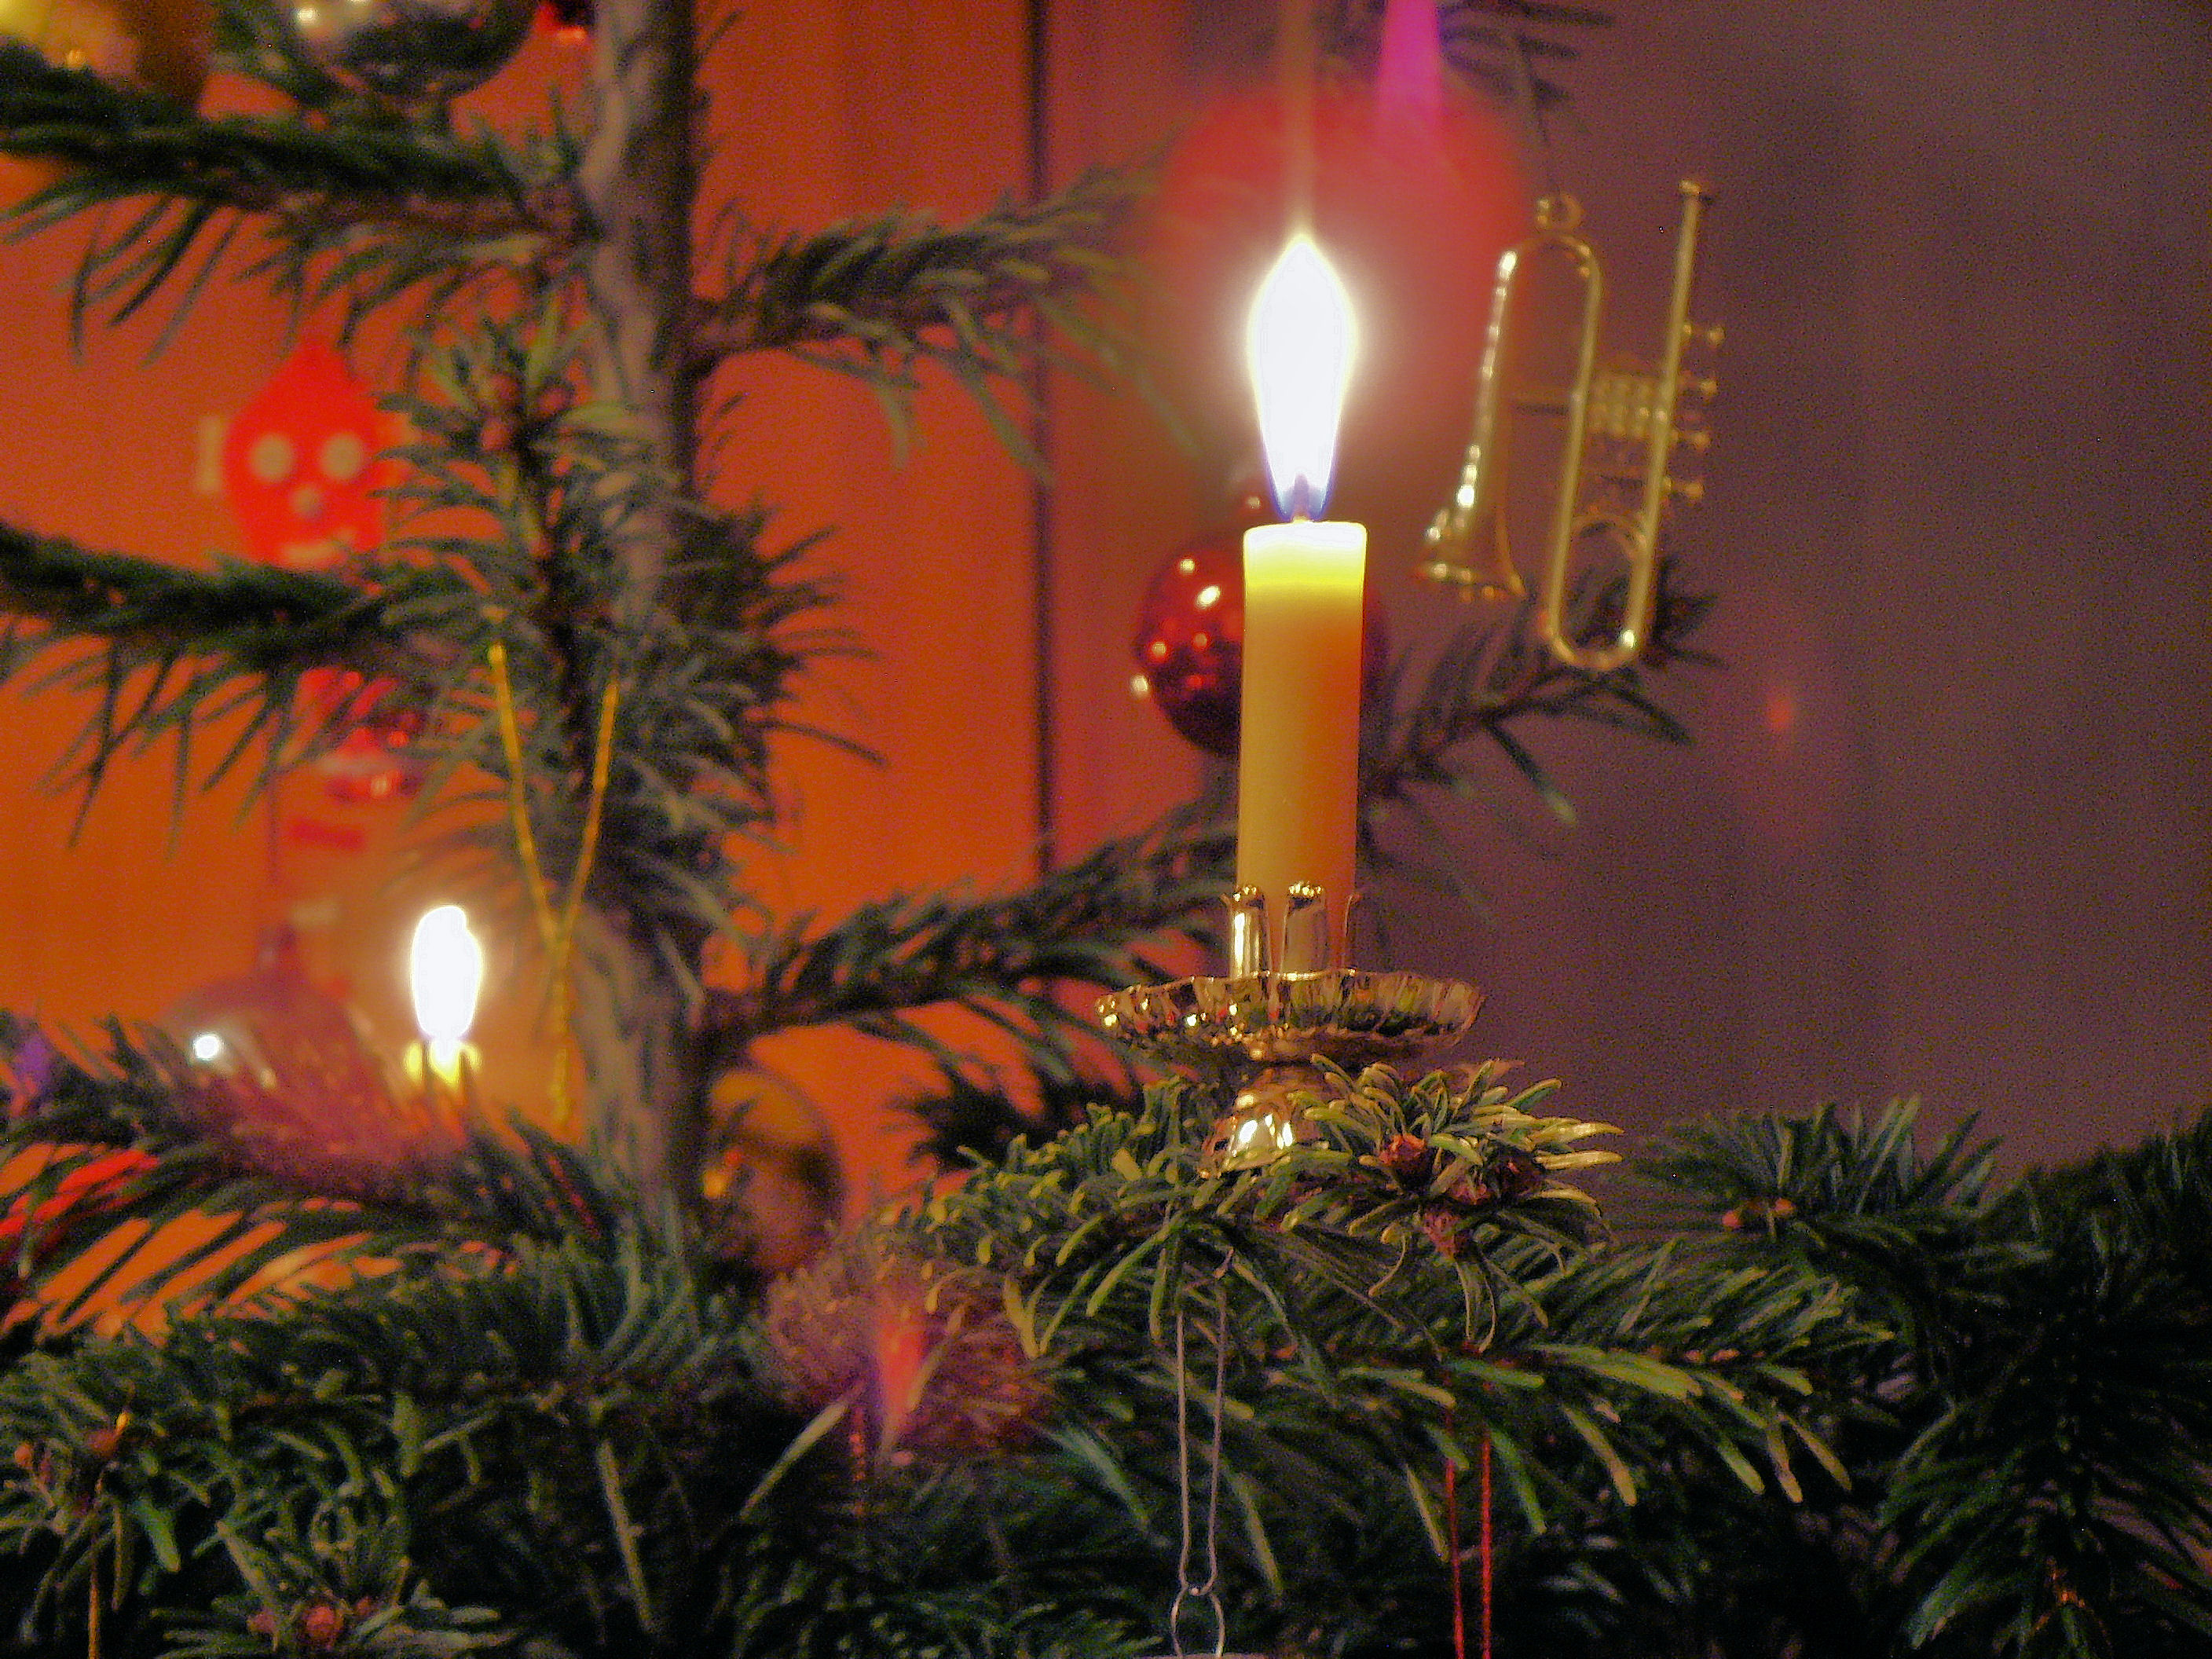 File:Candle on Christmas tree 2.jpg - Wikimedia Commons